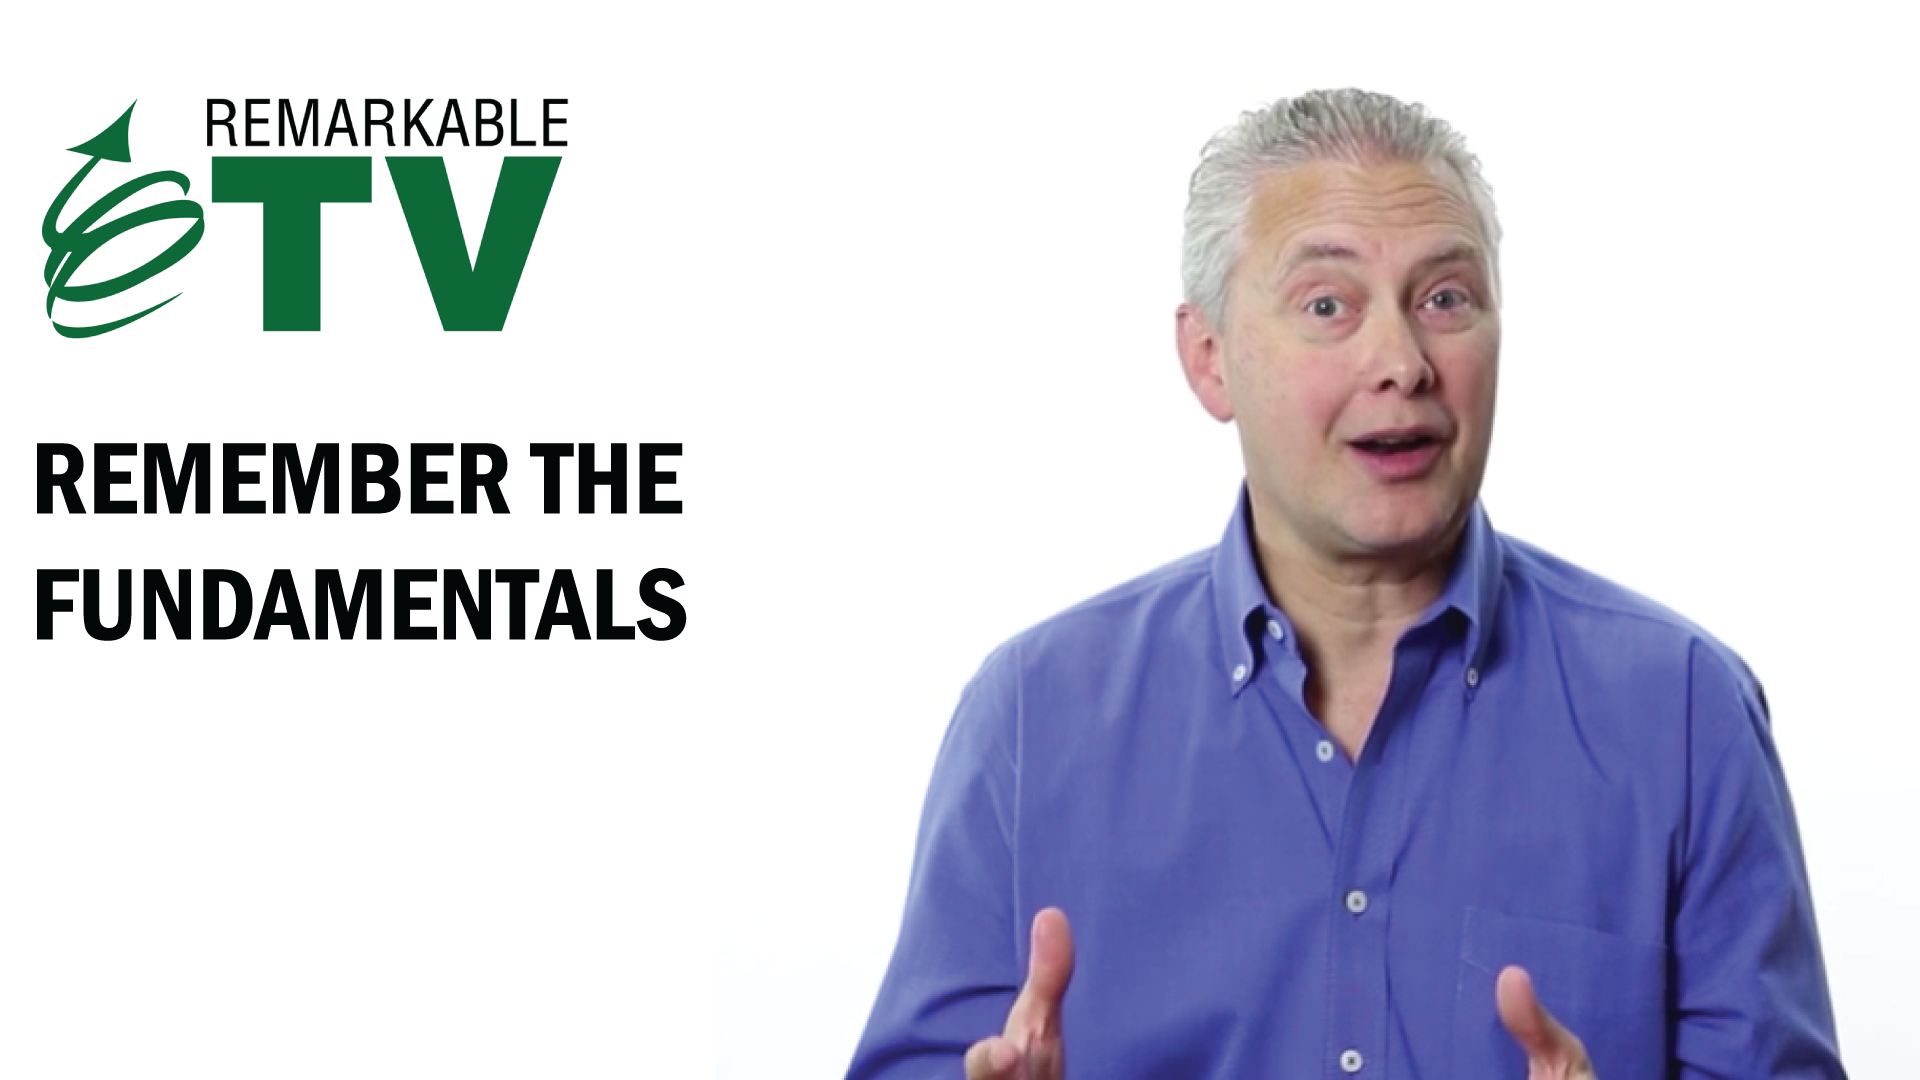 Why should you remember the fundamentals? Find out in this Remarkable TV episode with Kevin Eikenberry.